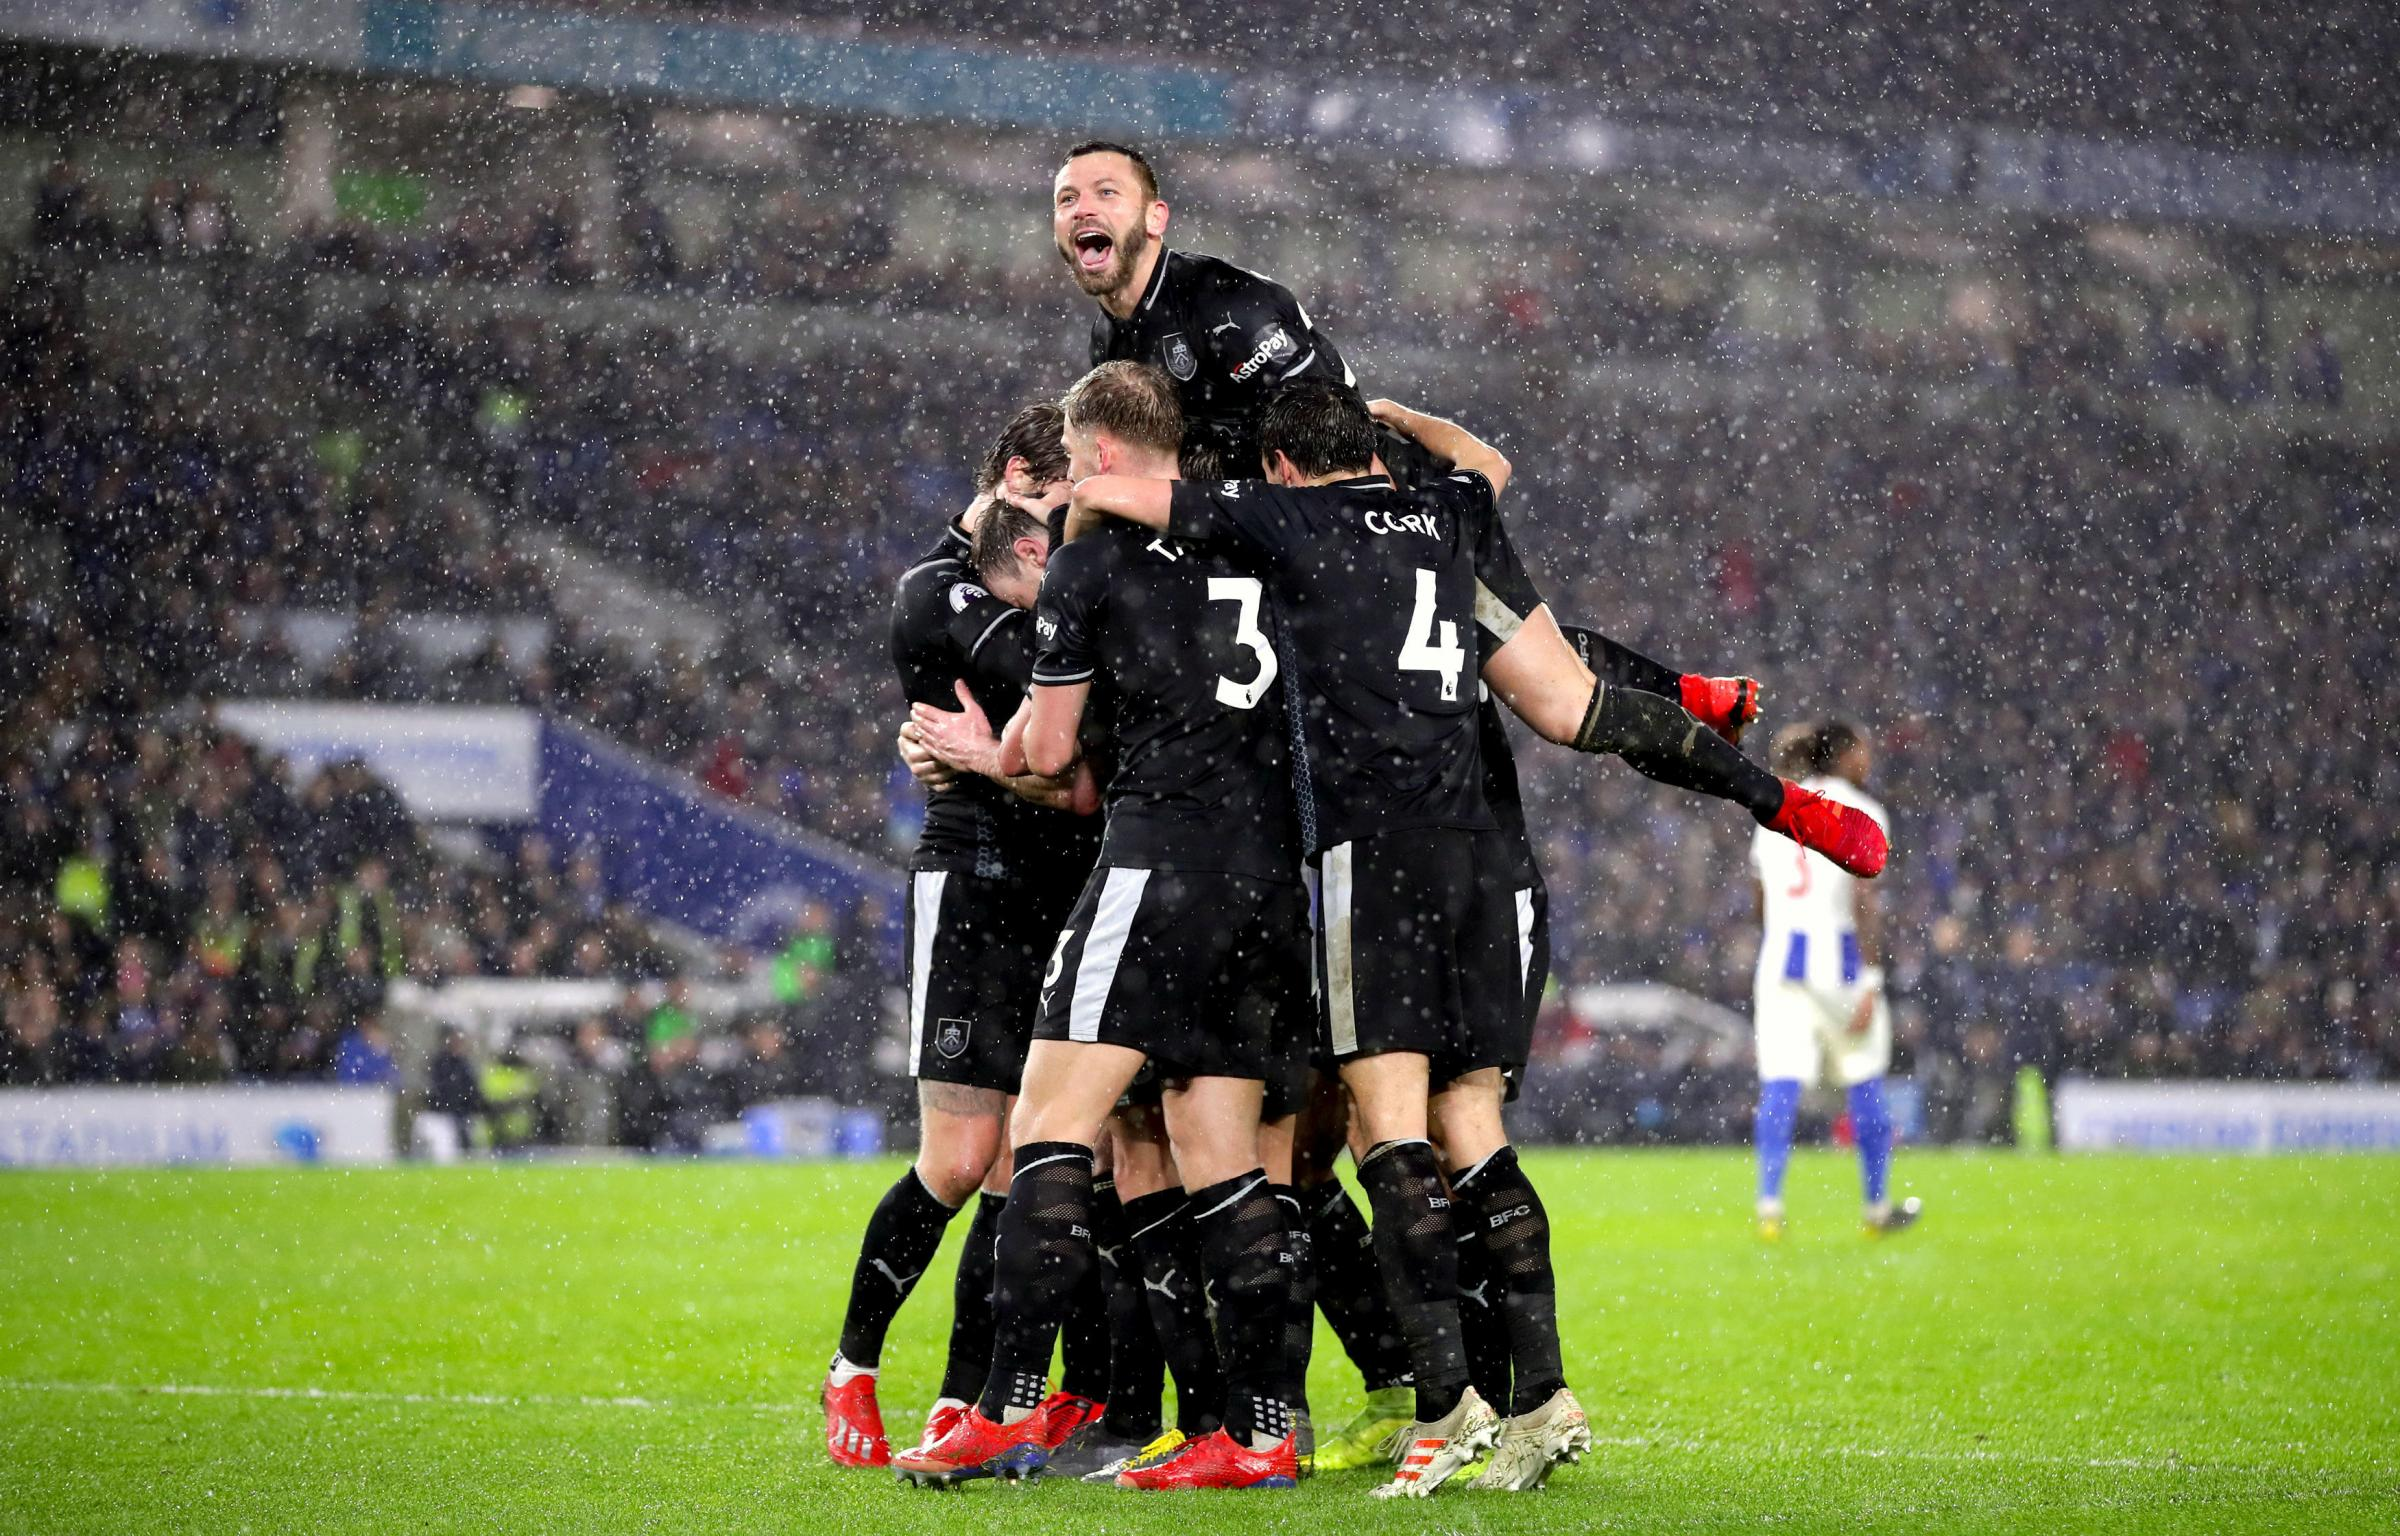 Burnley's Ashley Barnes celebrates scoring his side's third goal of the game from the penalty spot with team mates during the Premier League match at the AMEX Stadium, Brighton. PRESS ASSOCIATION Photo. Picture date: Saturday February 9, 2019. Se